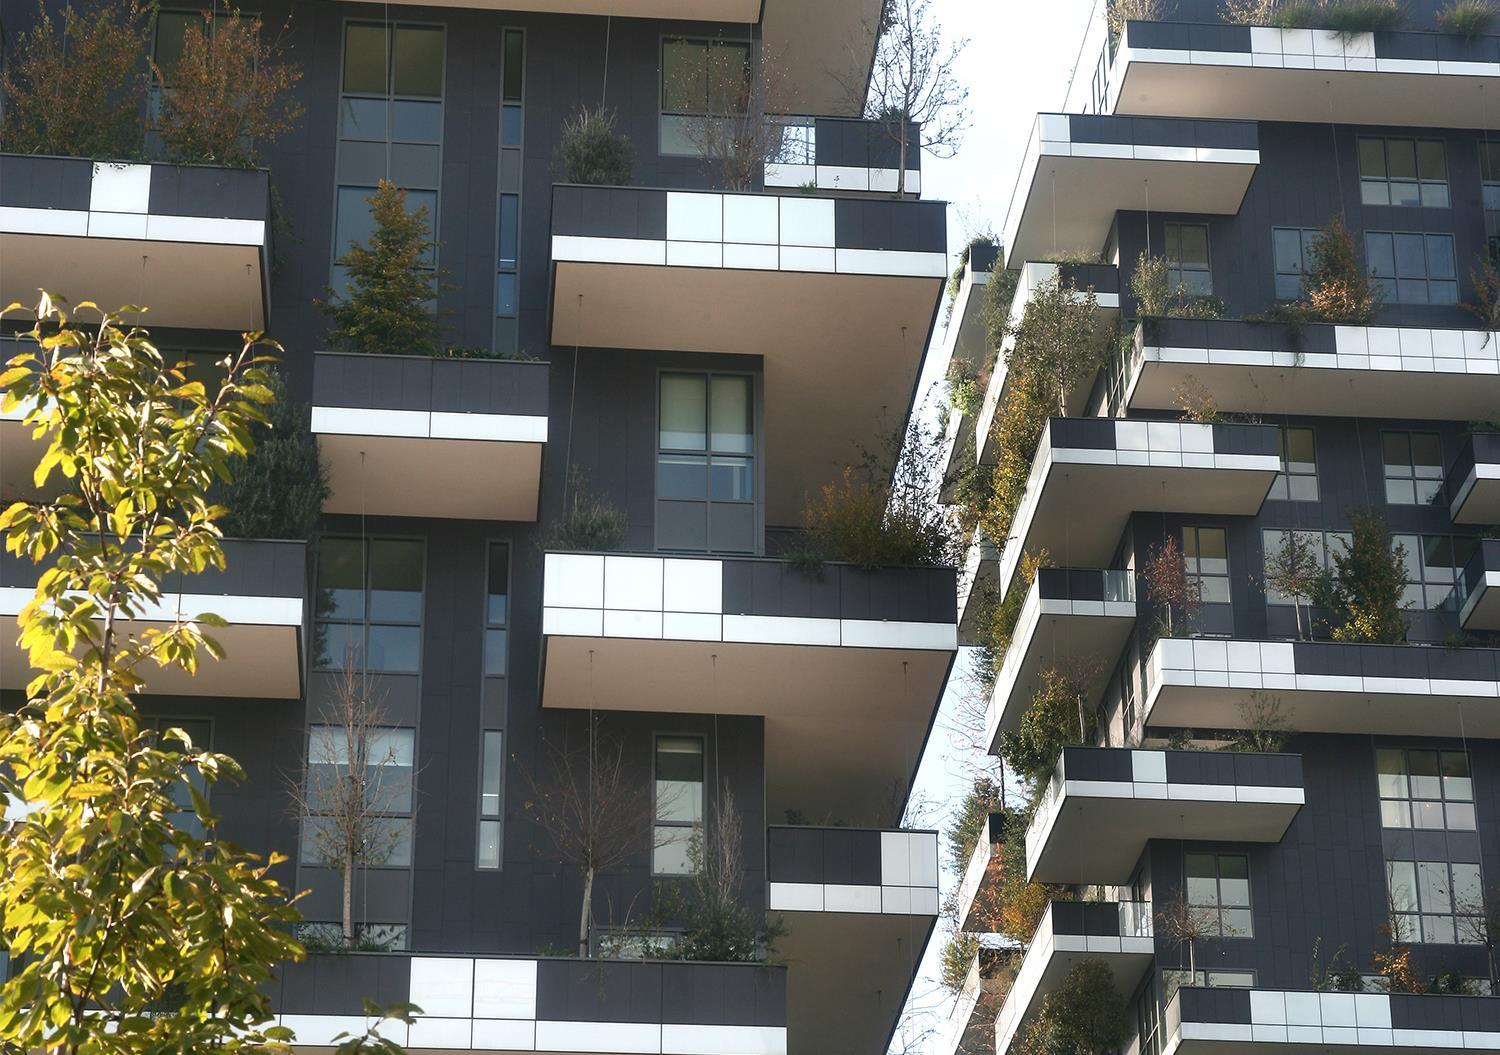 Bosco verticale: Photo 3